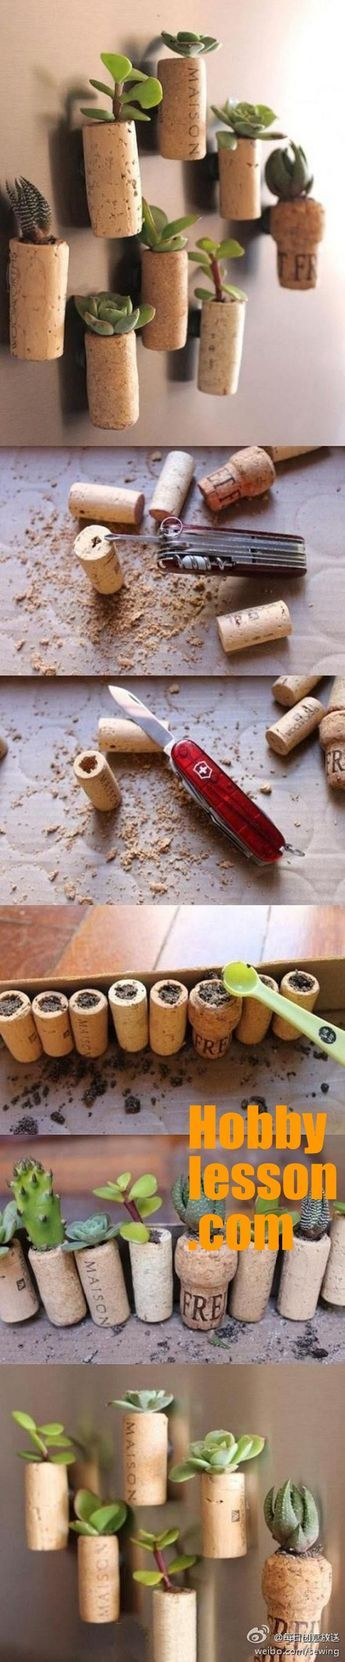 Wine-Cork-Craft-Ideas-We-Have-Seen-So-Far || Cork Craft Ideas || Wine Bottle Cork Planters